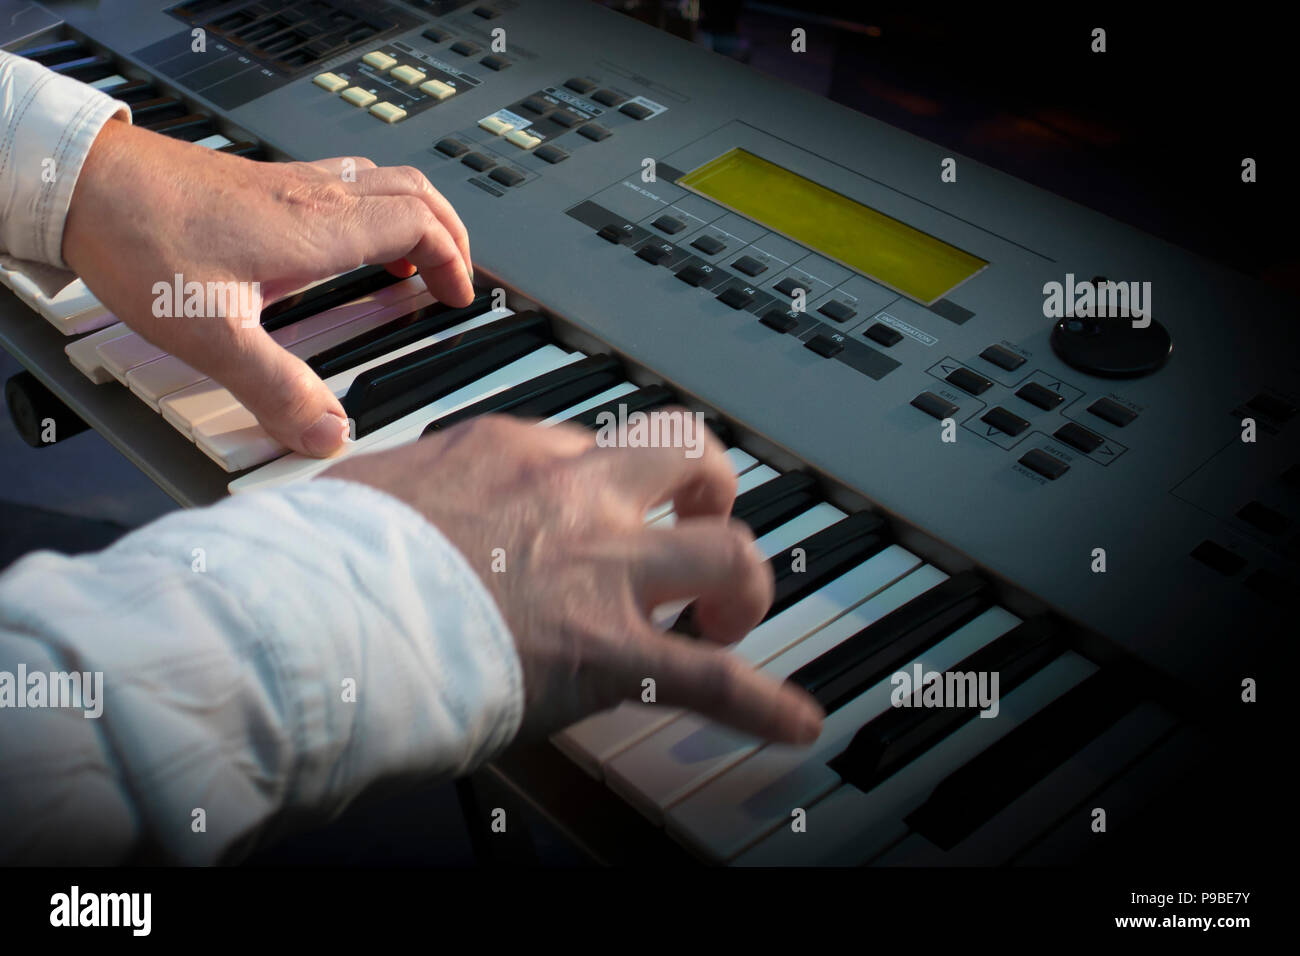 Closeup hands of musician playing synthesizer in concert - Stock Image